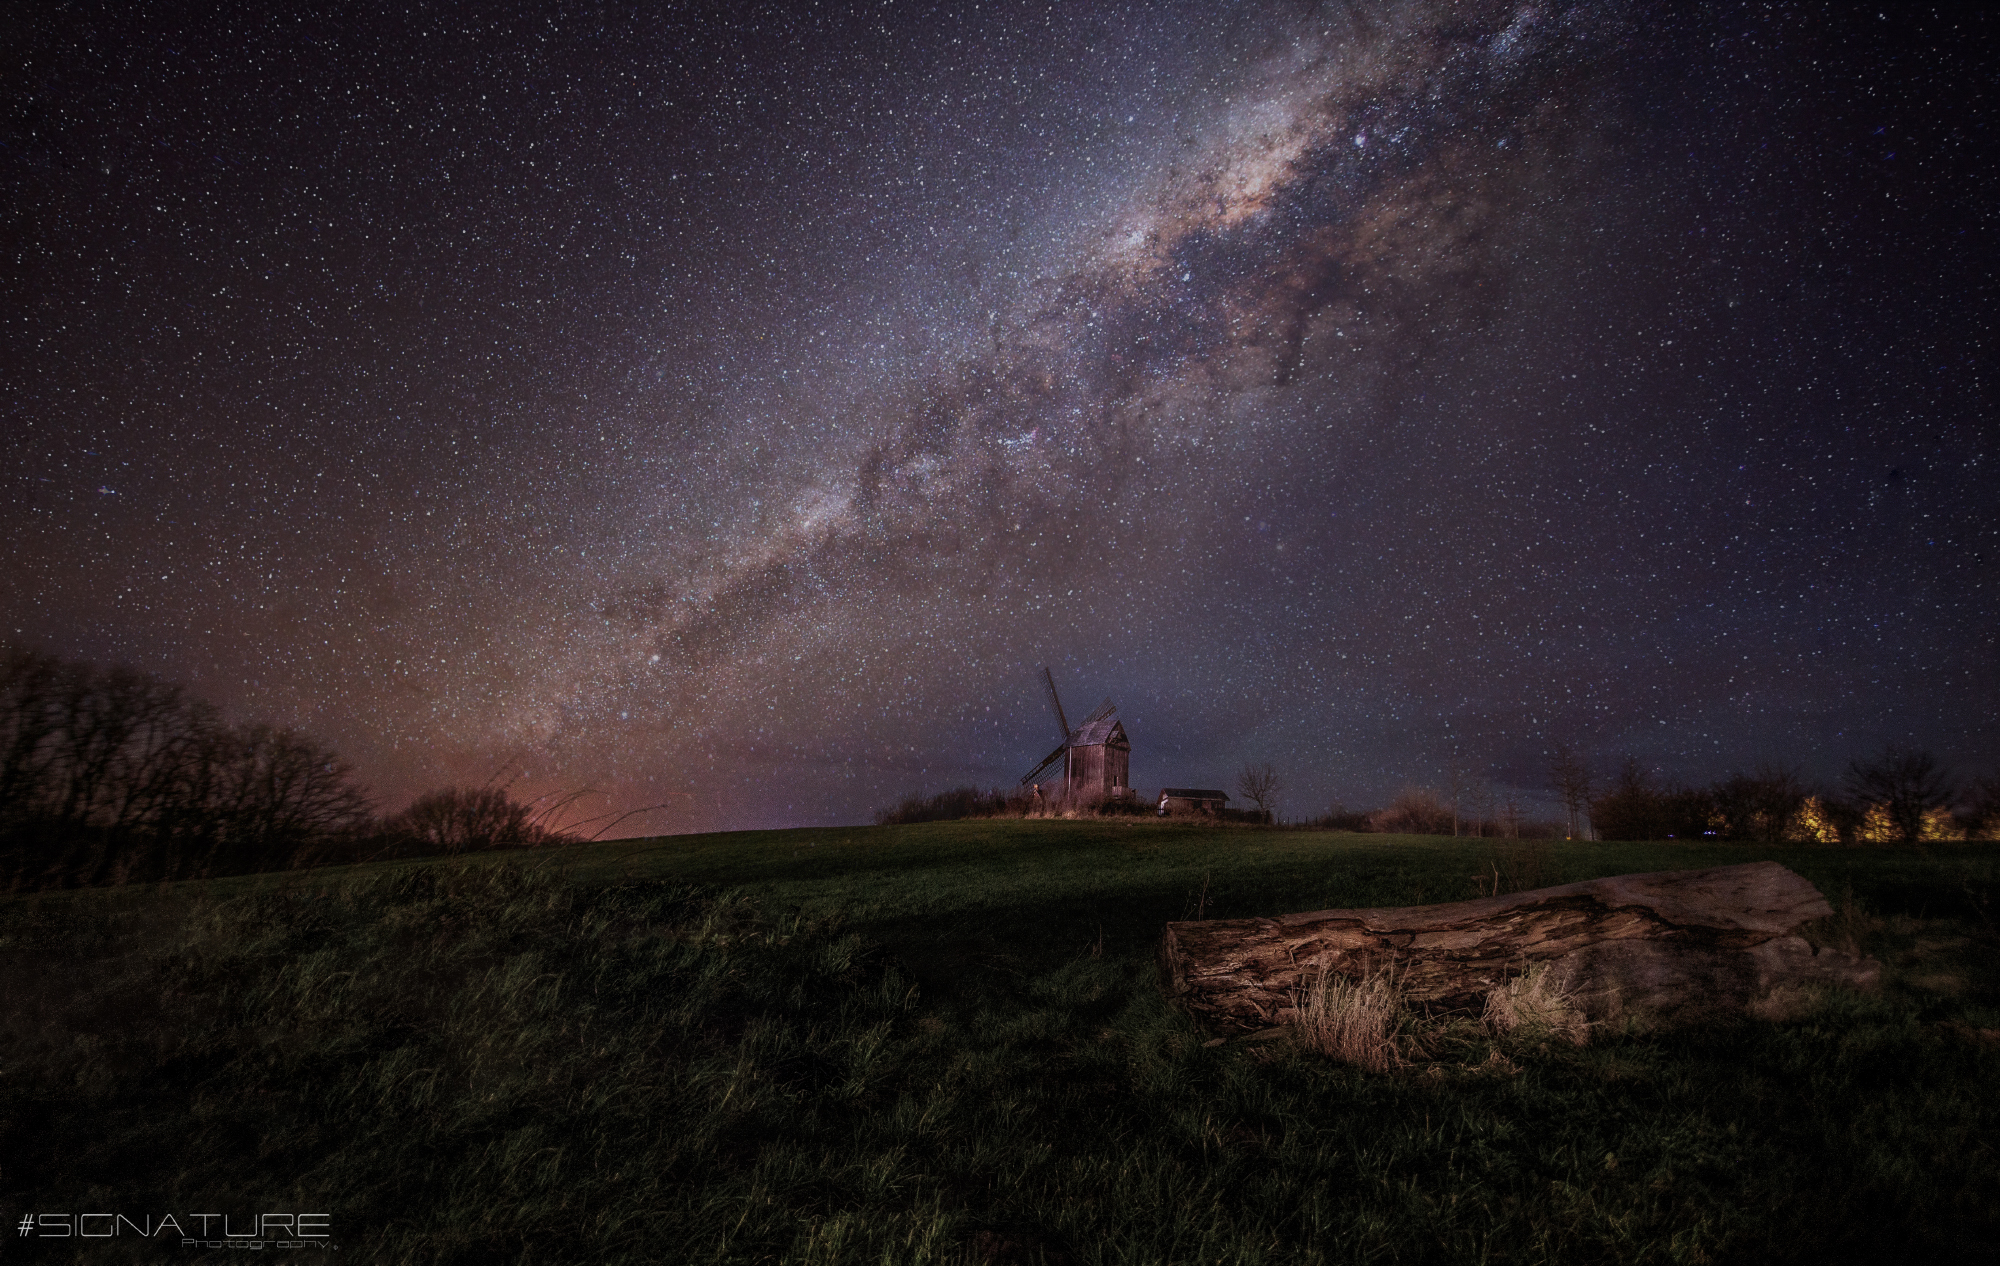 Milky Way over the Baltic Sea, Germany